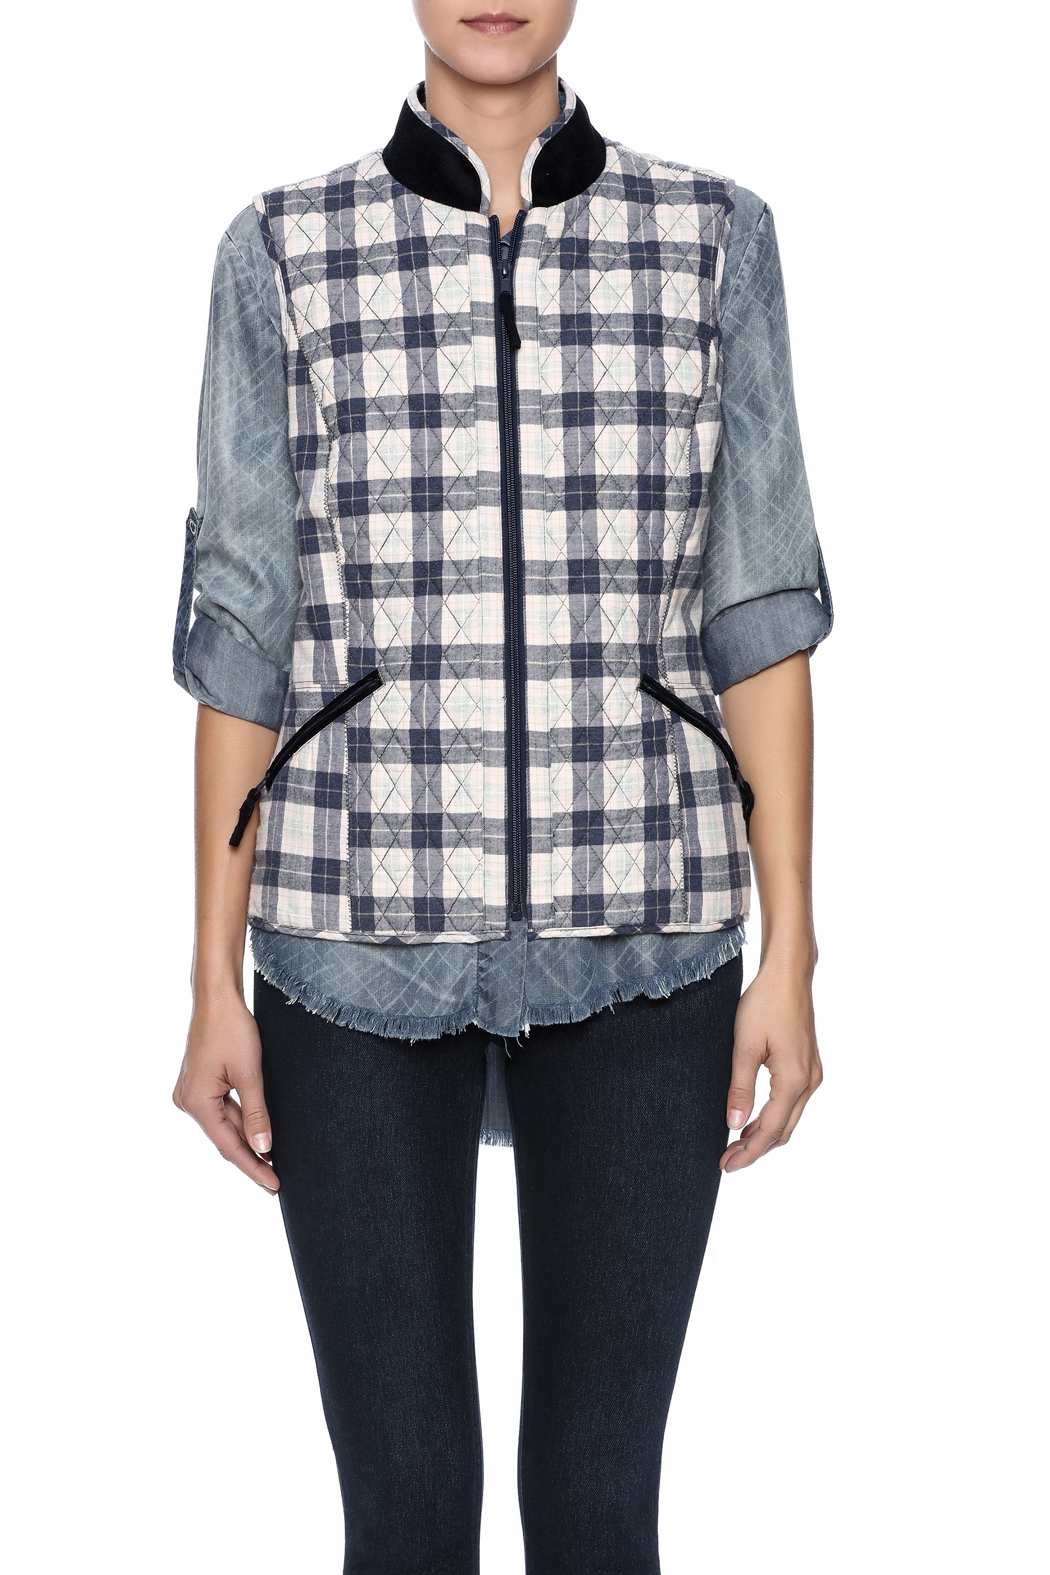 Tyler Boe Quilted Tailored Vest - Side Cropped Image